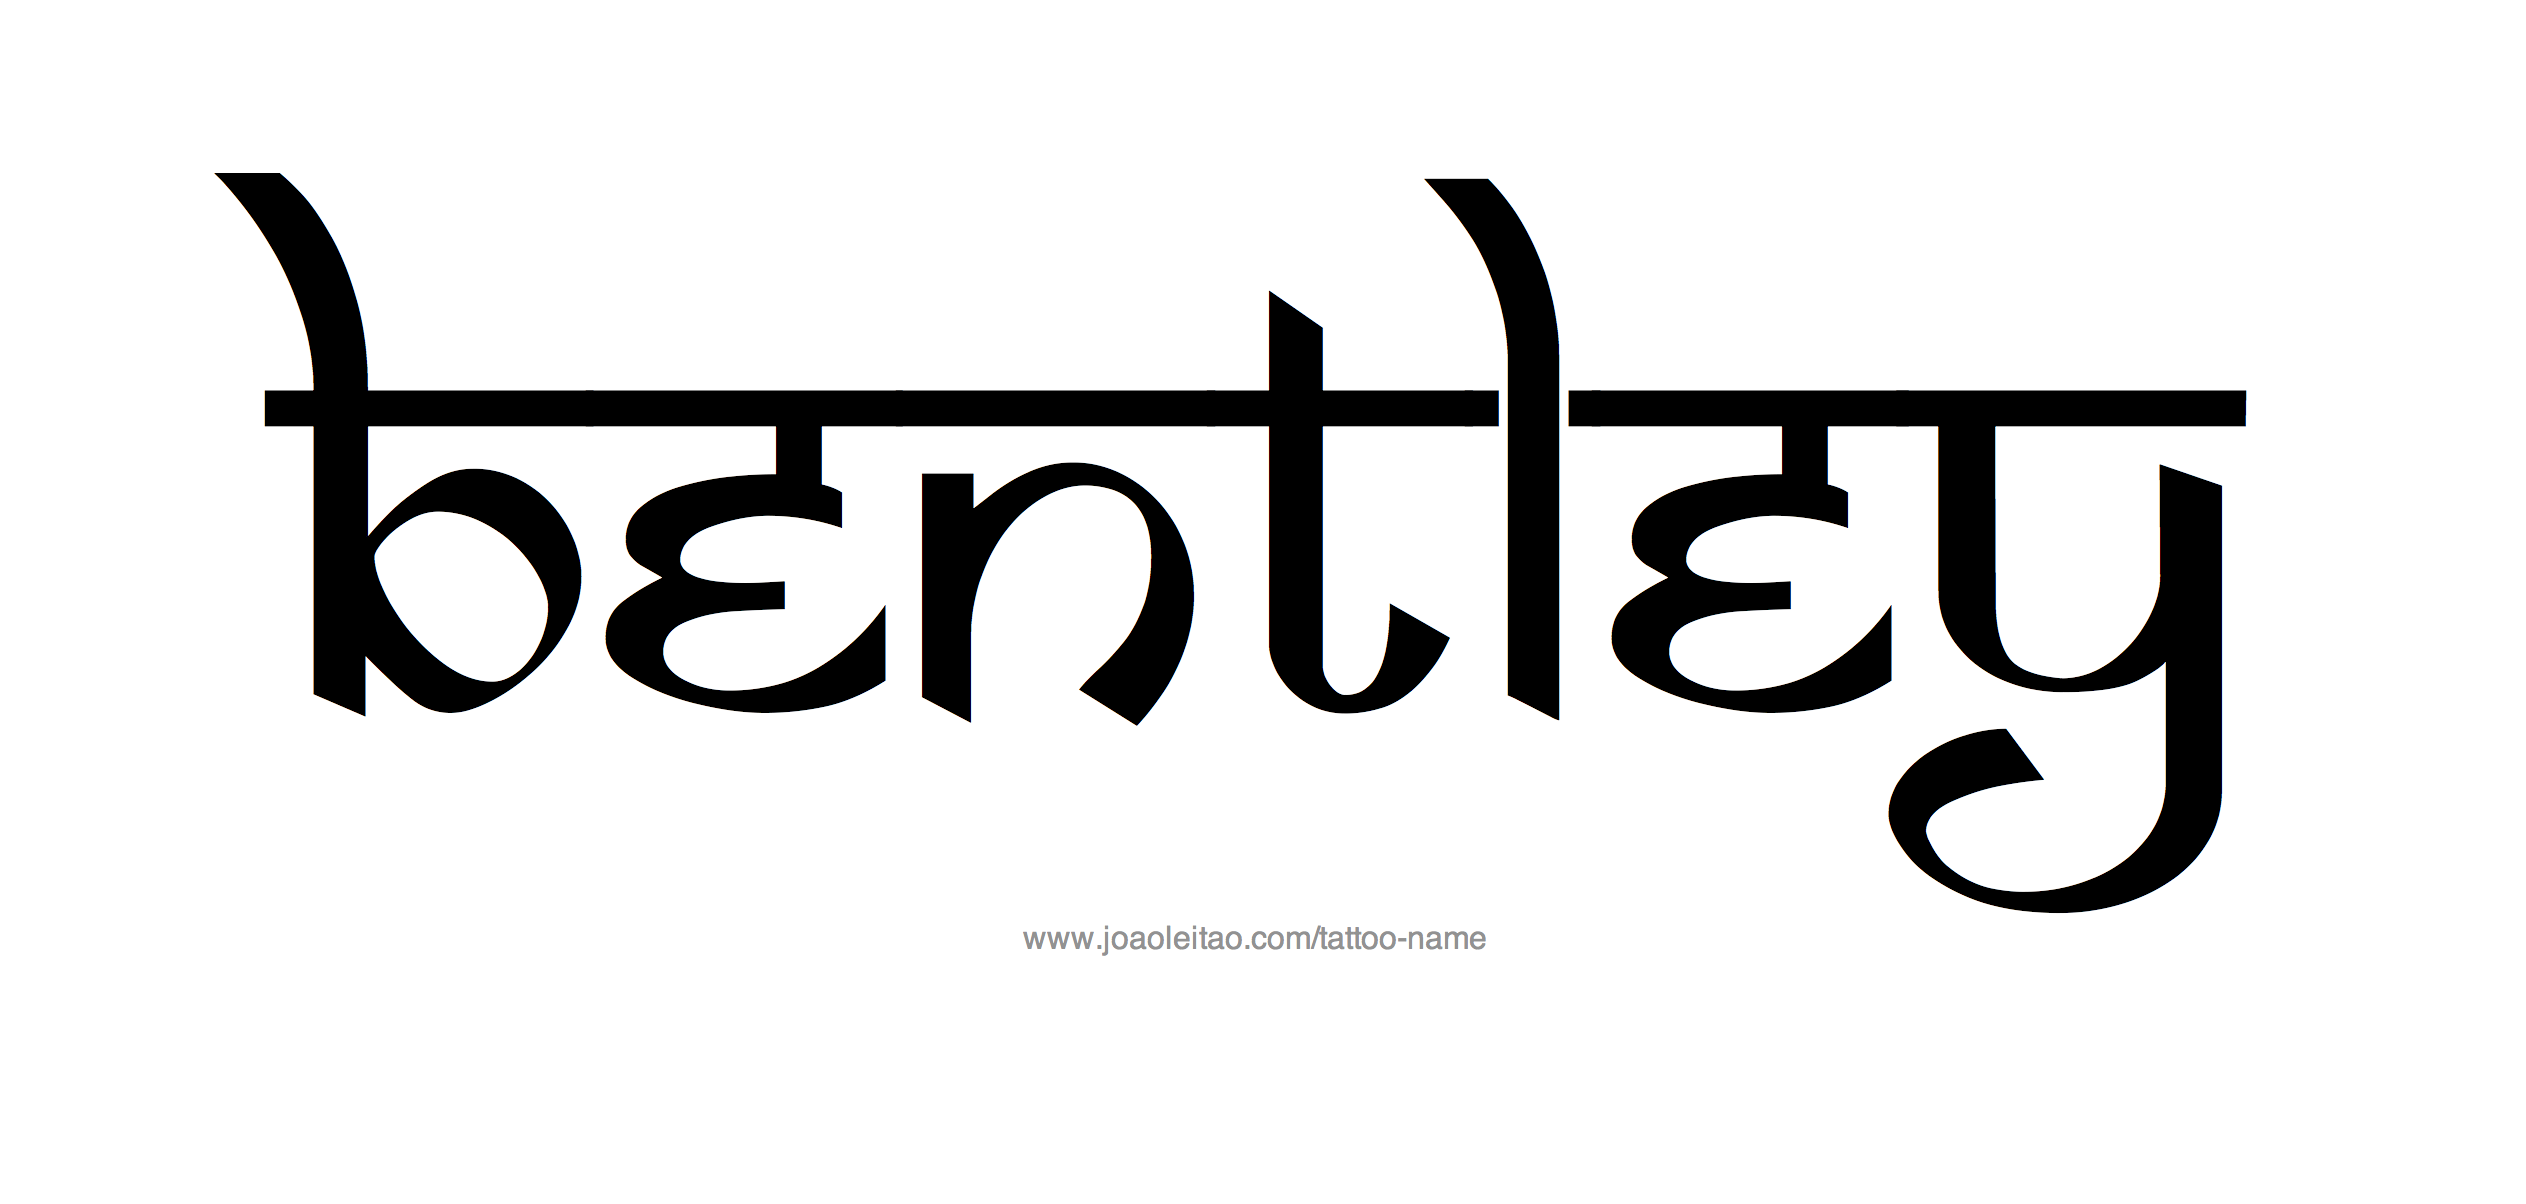 Hindi stylish font for tattoo pictures